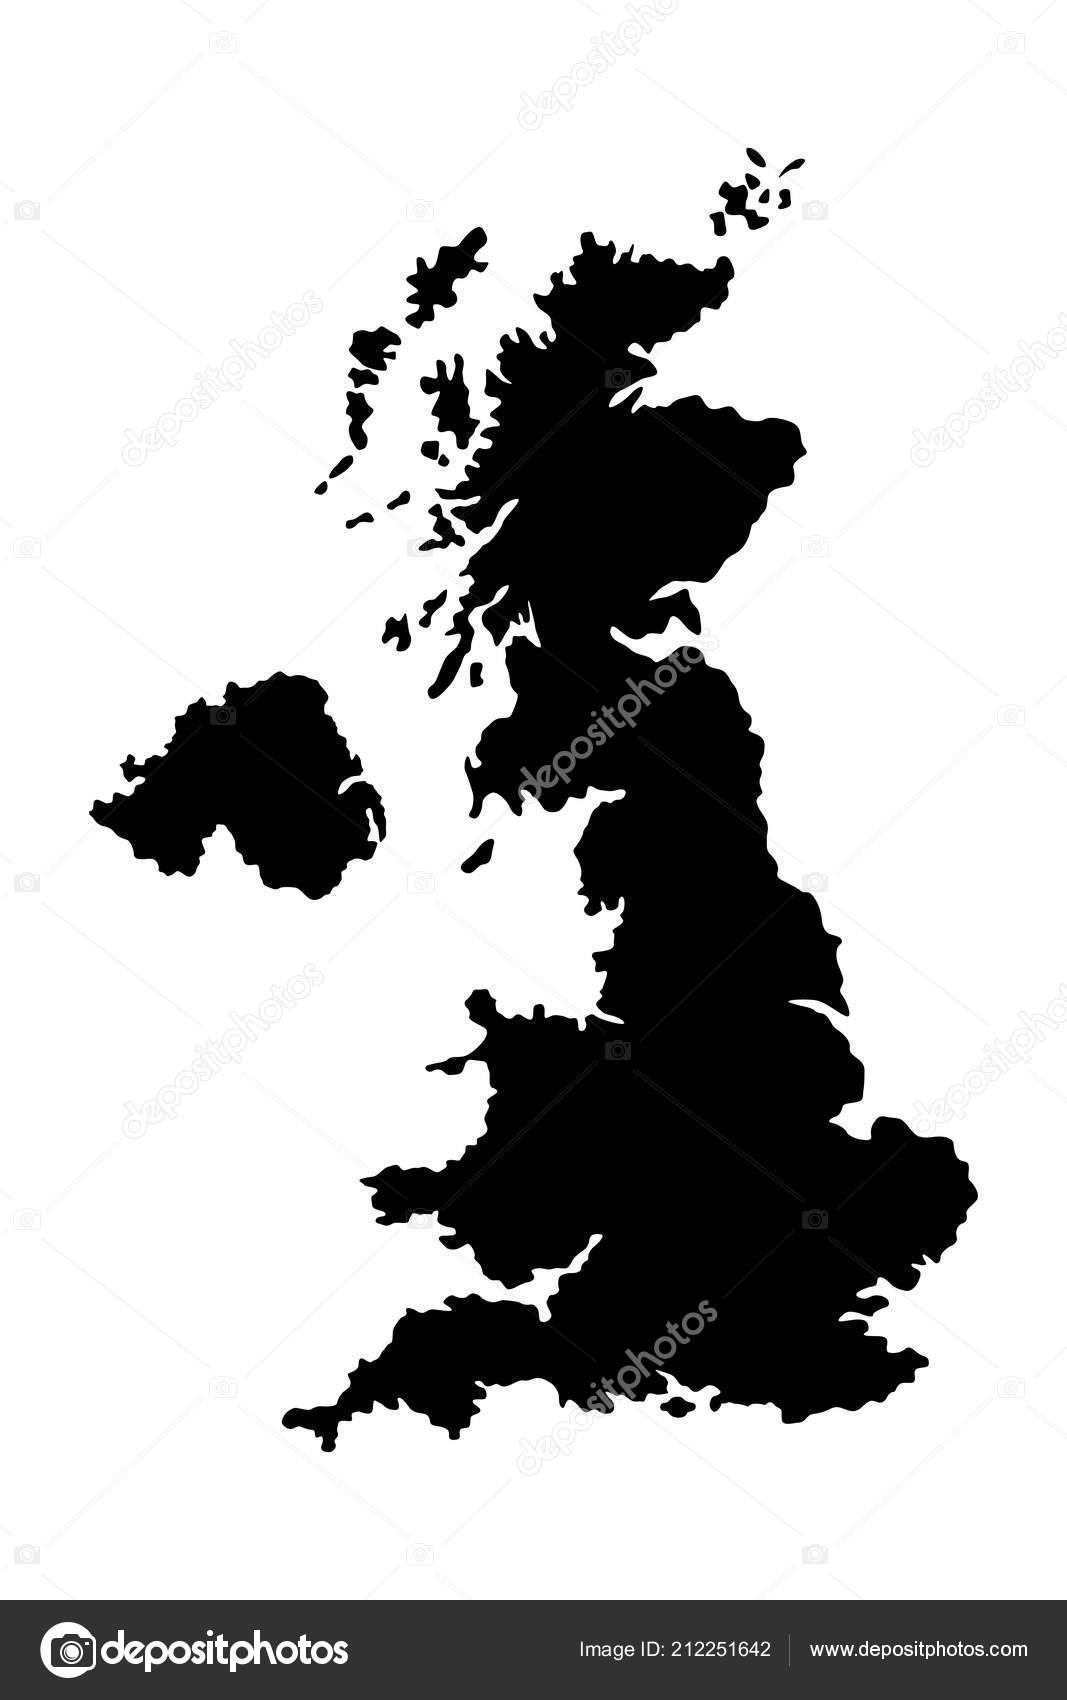 Silhouette United Kingdom Great Britain Map Black White Vector ... on mercia map, france map, england map, ireland map, british america map, scotland map, serbia and montenegro map, roman empire map, great britain on a map, united kingdom map, spain map, french revolutionary wars map,